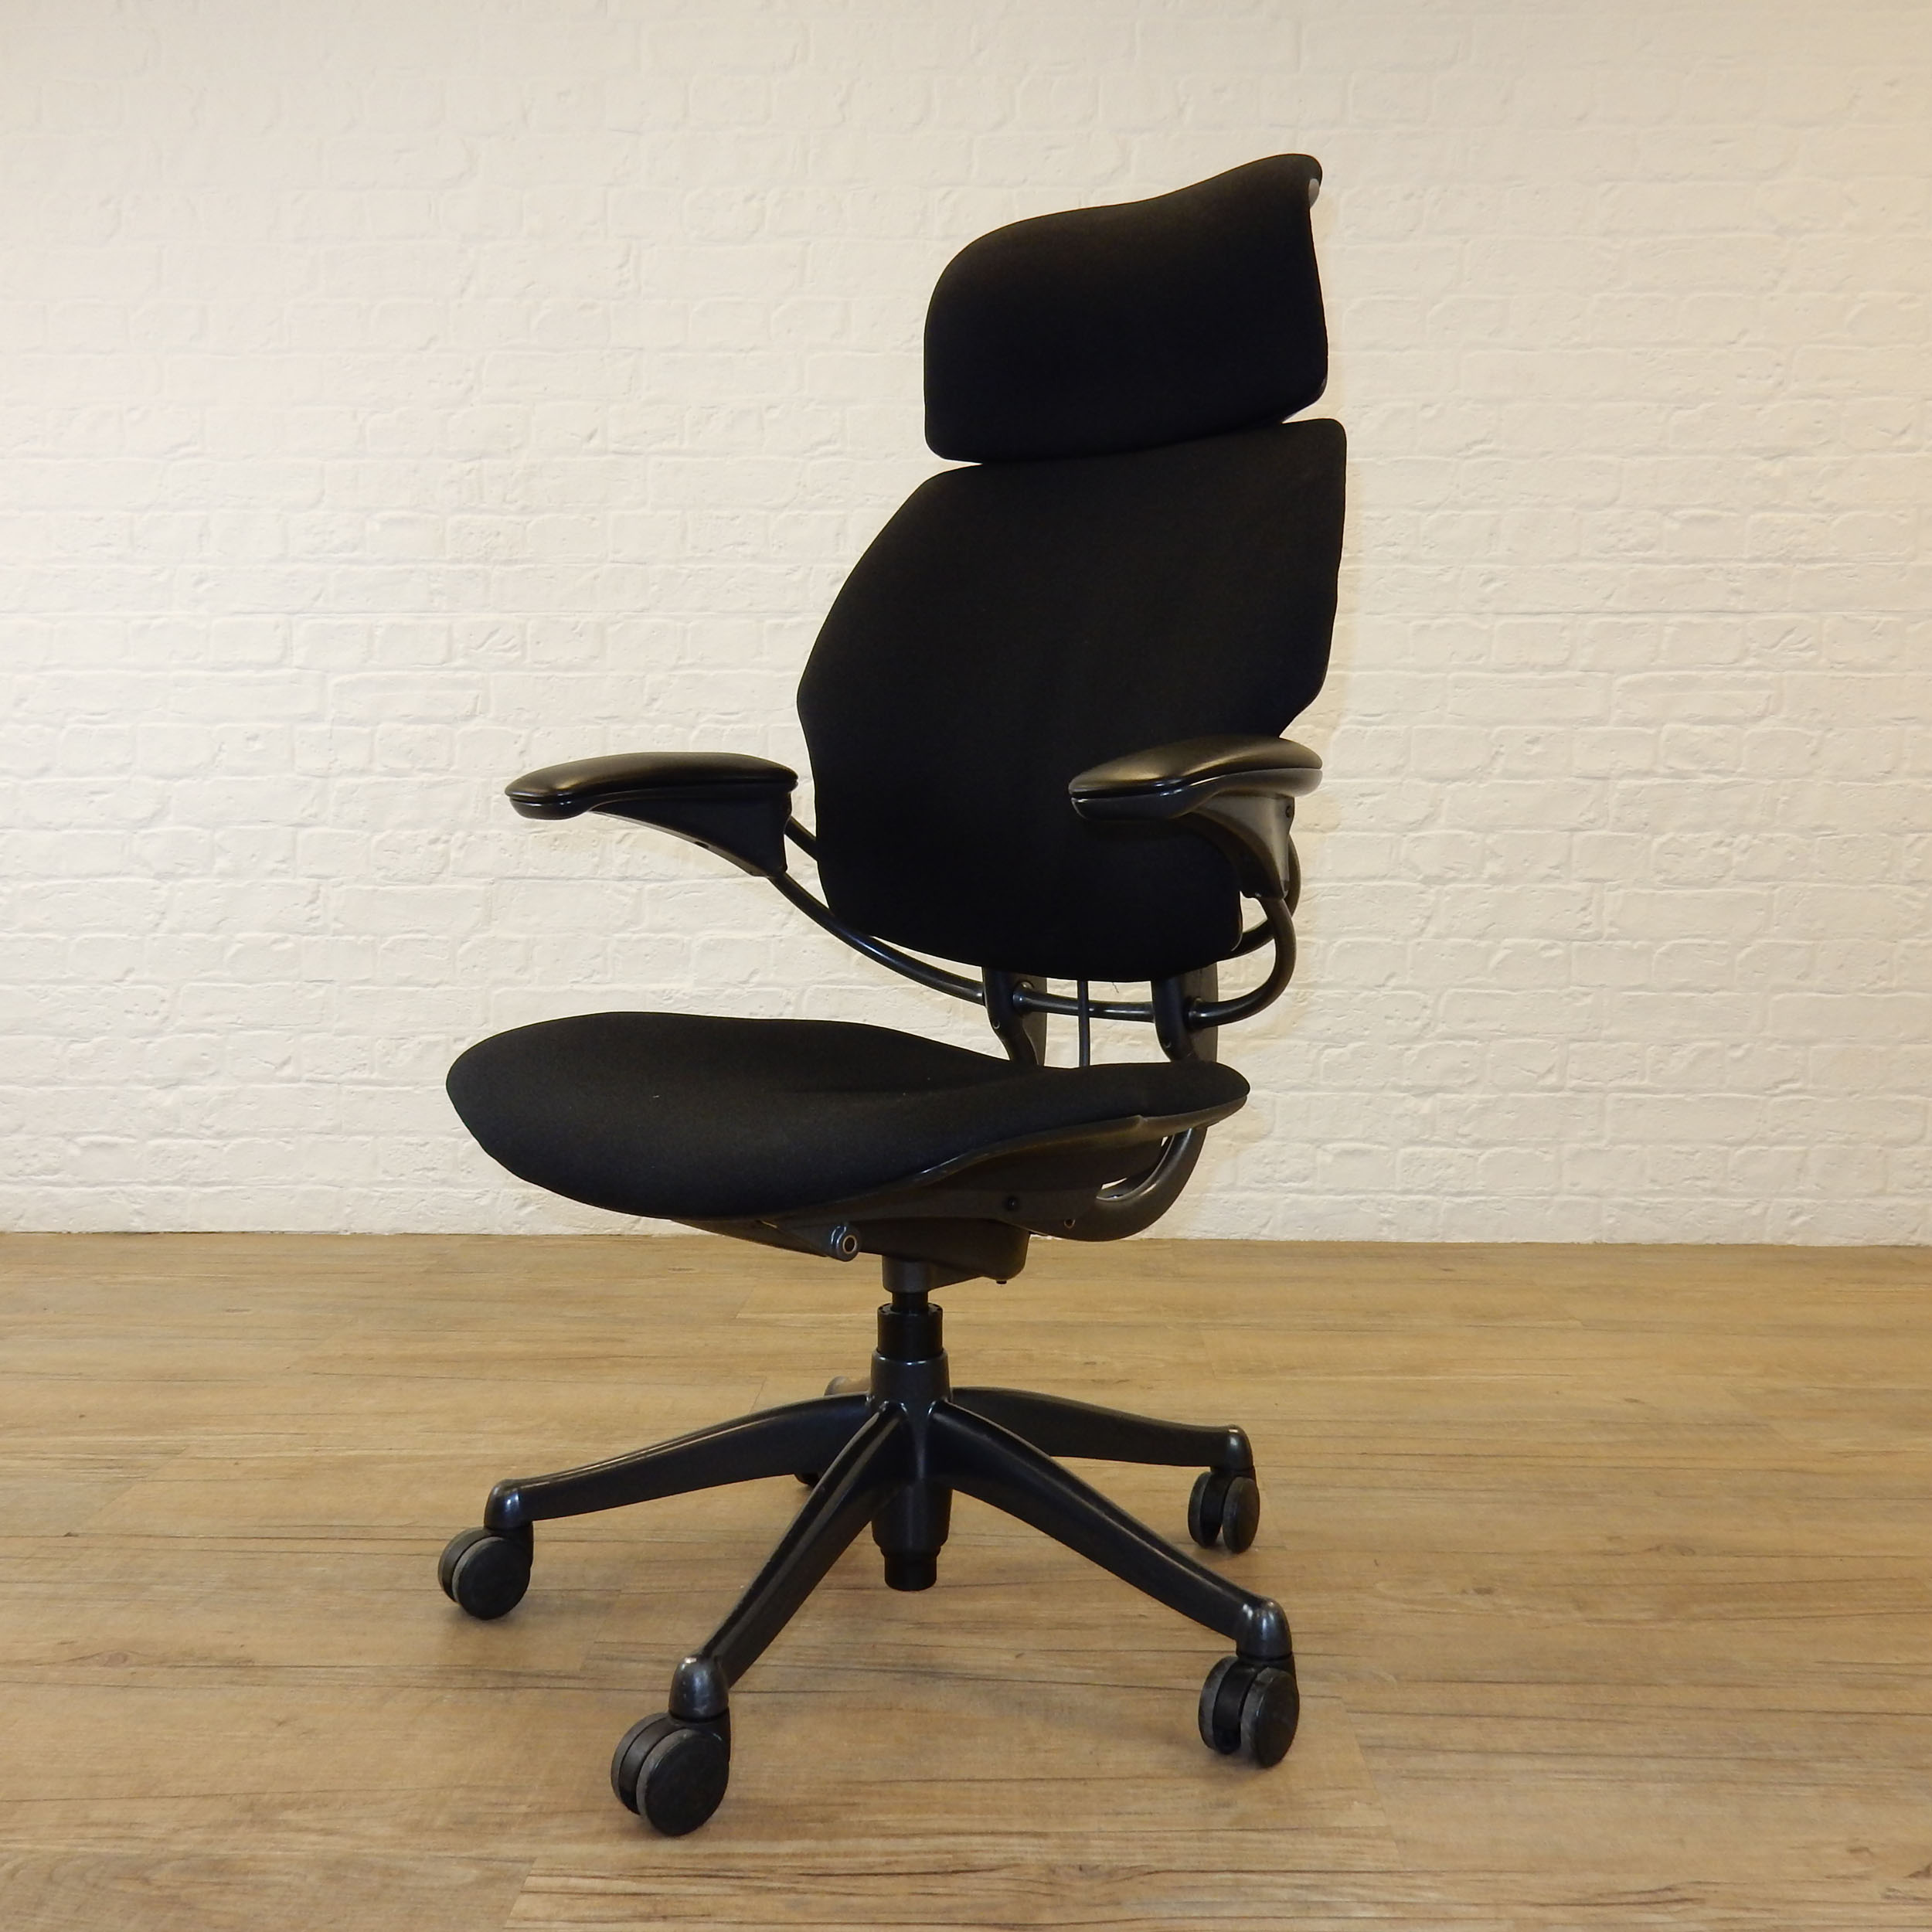 Ergonomic Chair Headrest | Humanscale Freedom Chair | Used Humanscale Freedom Chair